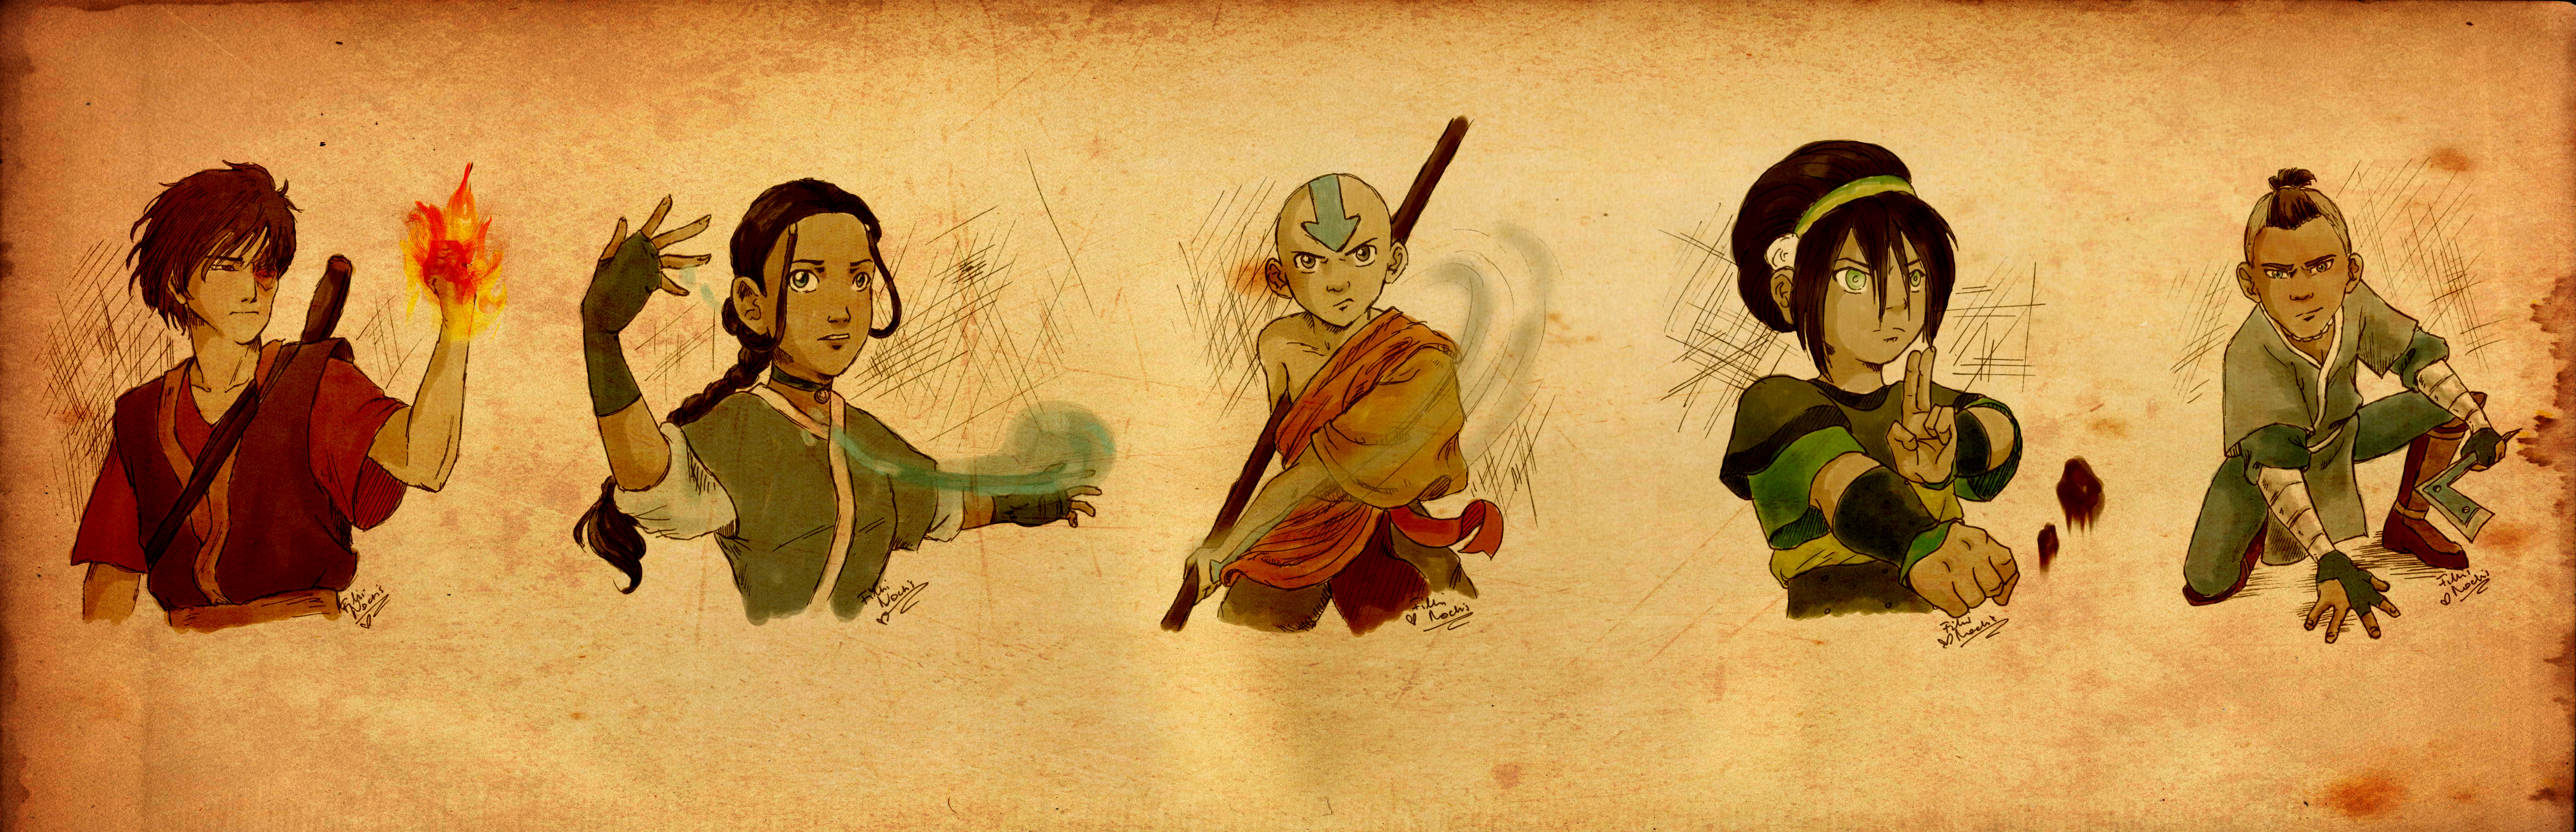 LivingAliveCreator 402 116 Avatar The Last Airbender By FilliNoctis